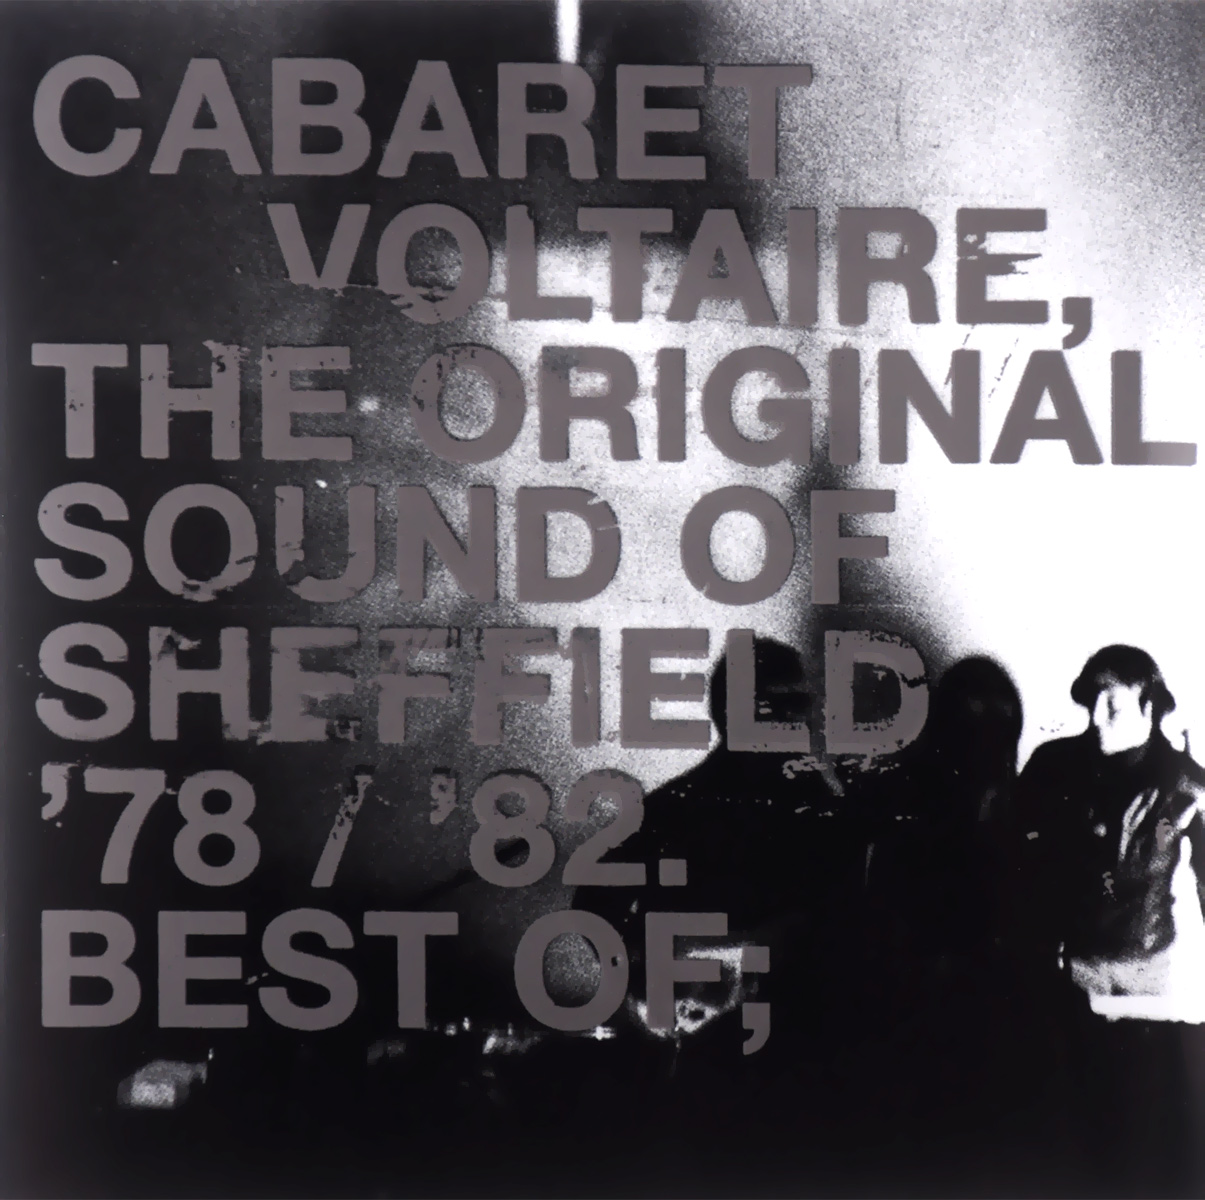 Cabaret Voltaire Cabaret Voltaire. The Original Sound Of Sheffield 78 / 82. Best Of cabaret voltaire cabaret voltaire the original sound of sheffield 78 82 best of